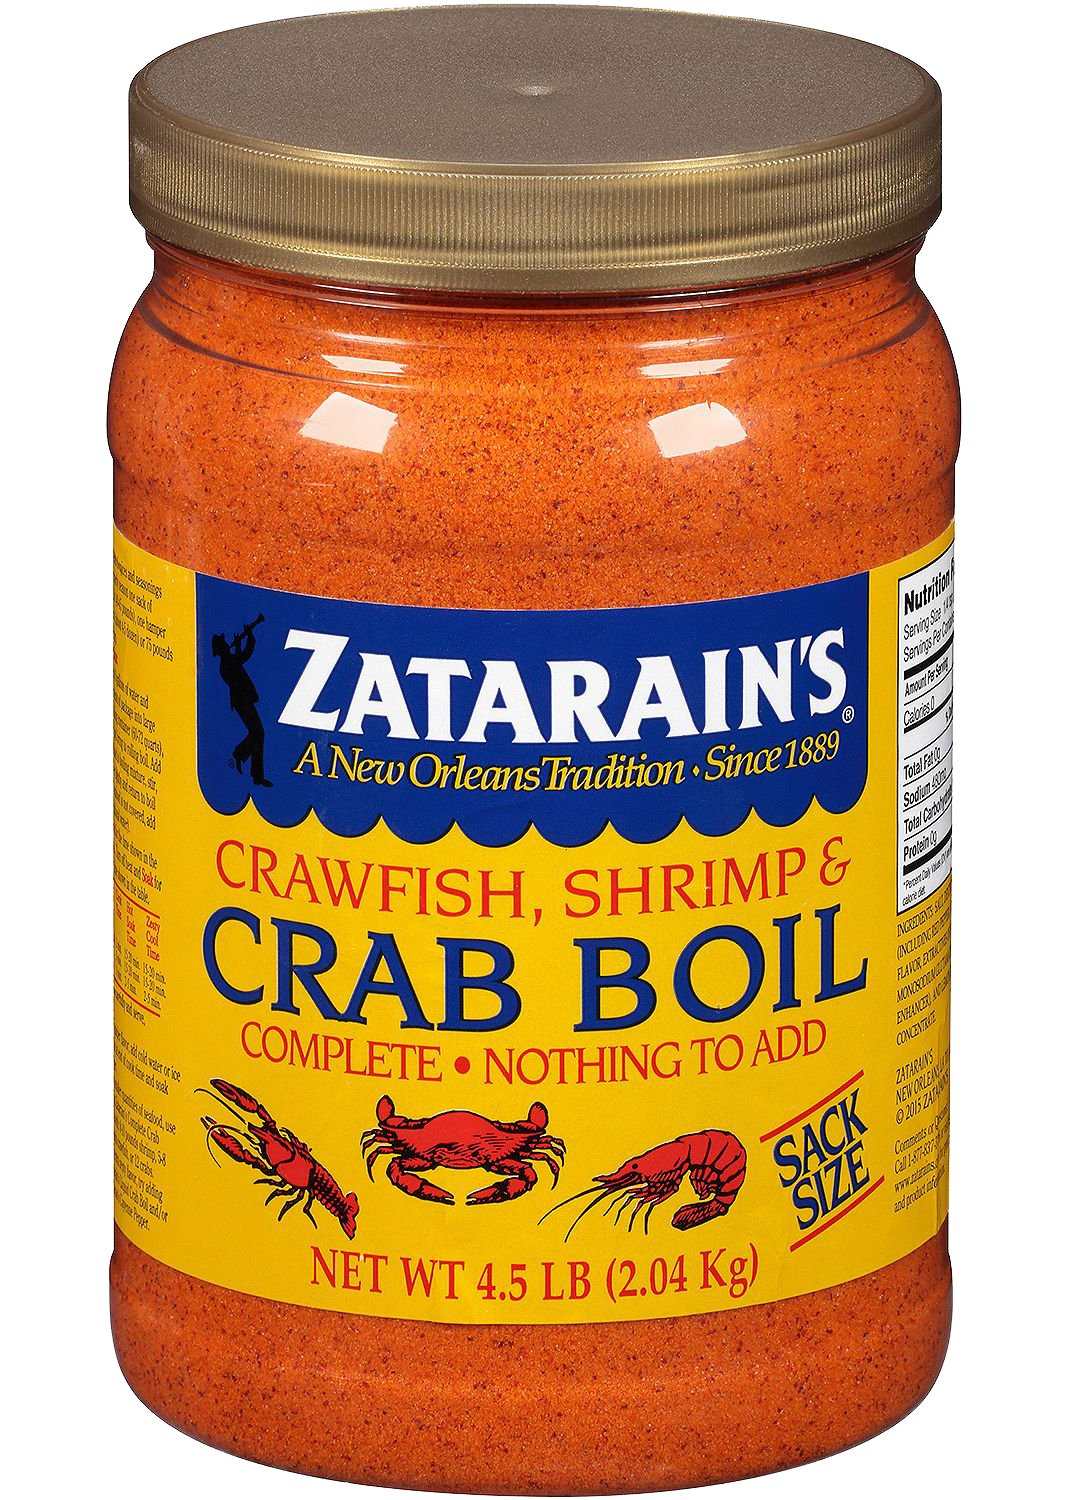 Zatarains Pre-Seasoned Crab and Shrimp Boil 72 Ounce (Pack of 5 - Total 360 Ounce)